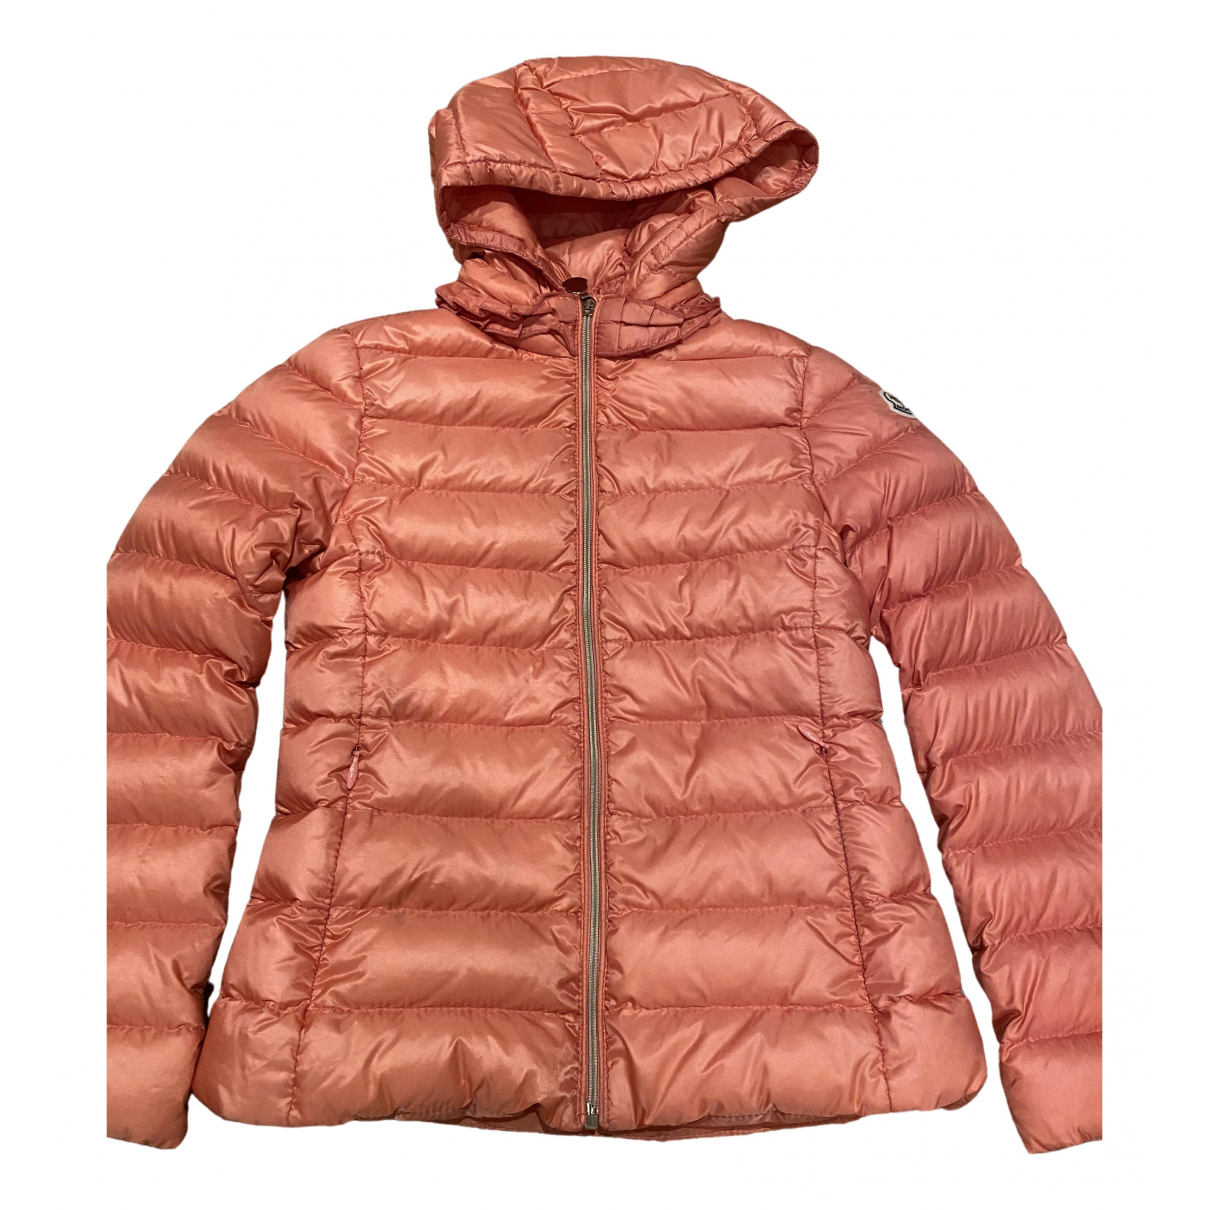 Moncler Hood Pink jacket & coat for Kids 6 years - up to 114cm FR